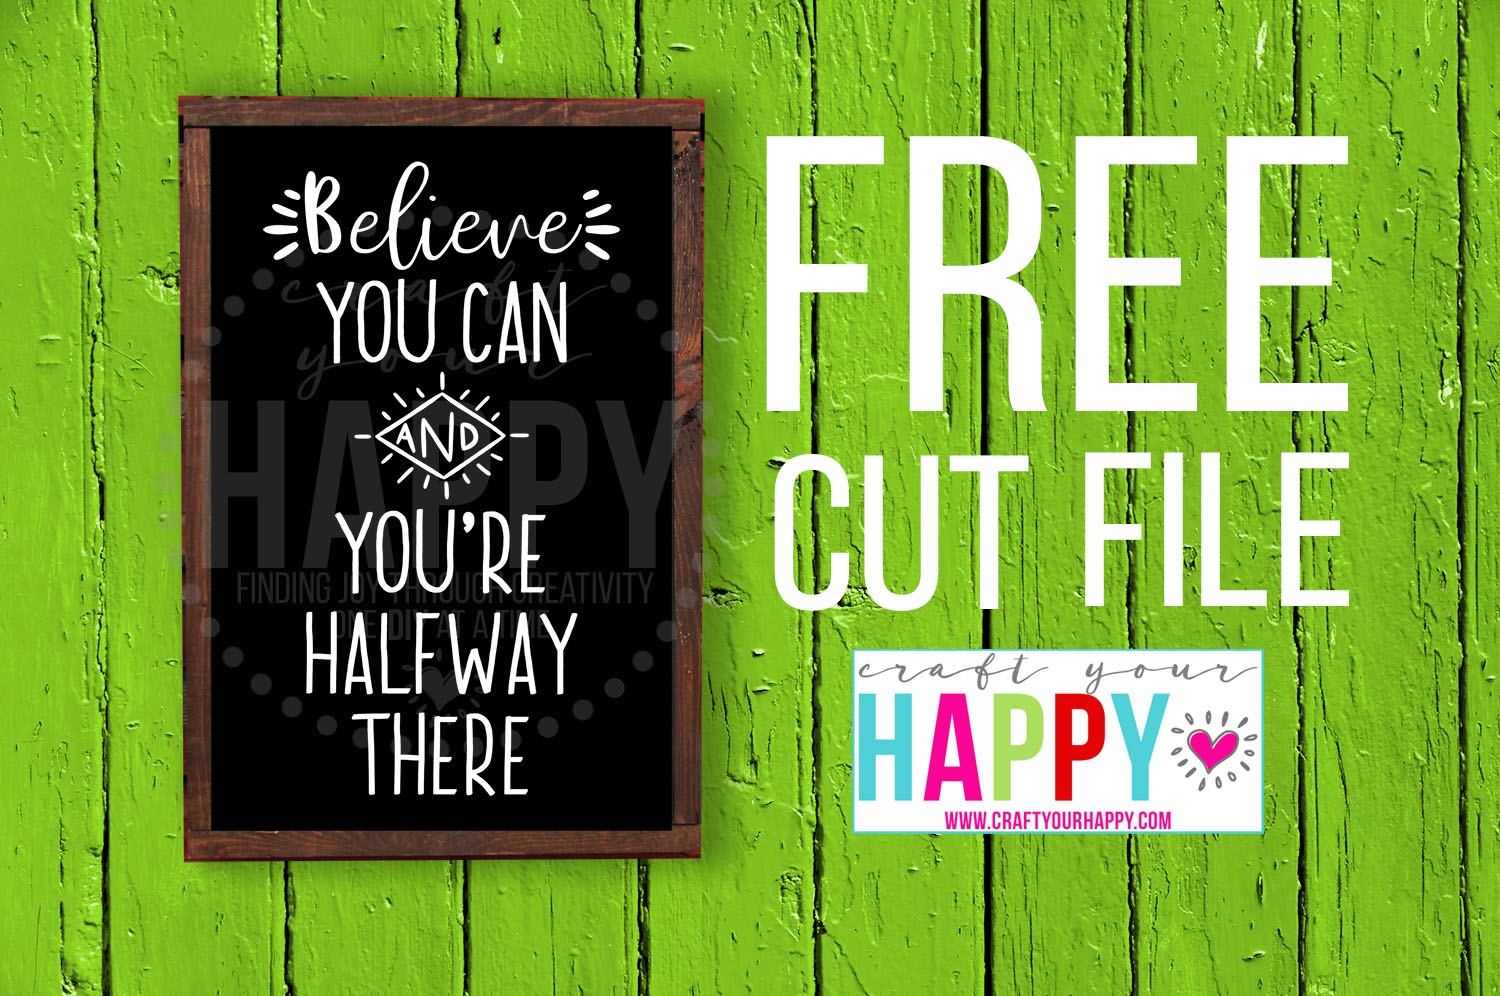 Believe You Can And You're Halfway There - FREE SVG Cut File from Craft Your Happy